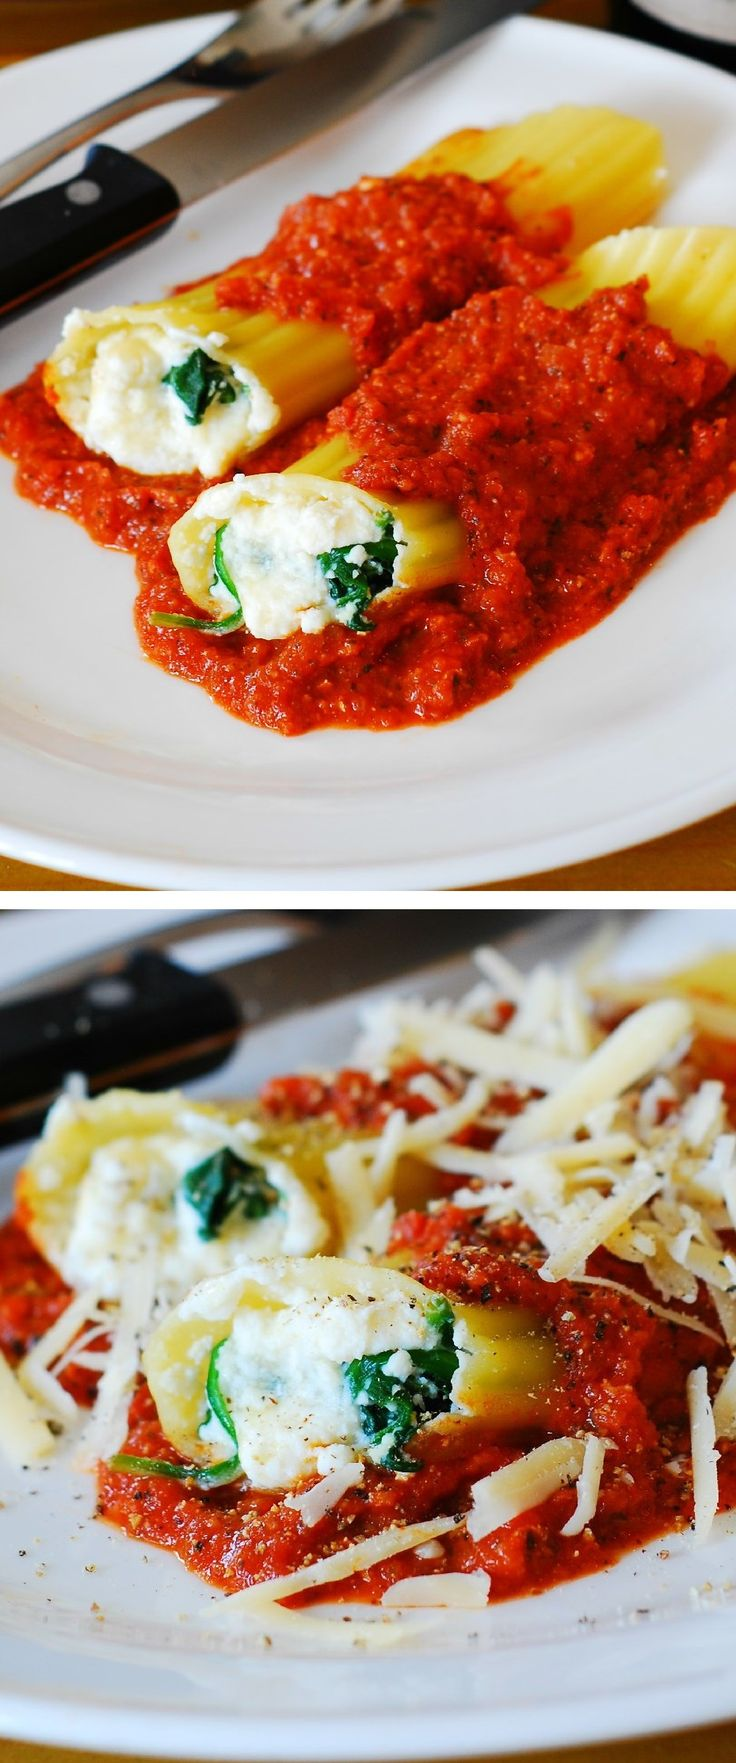 Stuffed manicotti pasta shells with ricotta cheese and spinach filling in a homemade tomato sauce (Italian, vegetarian recipes)